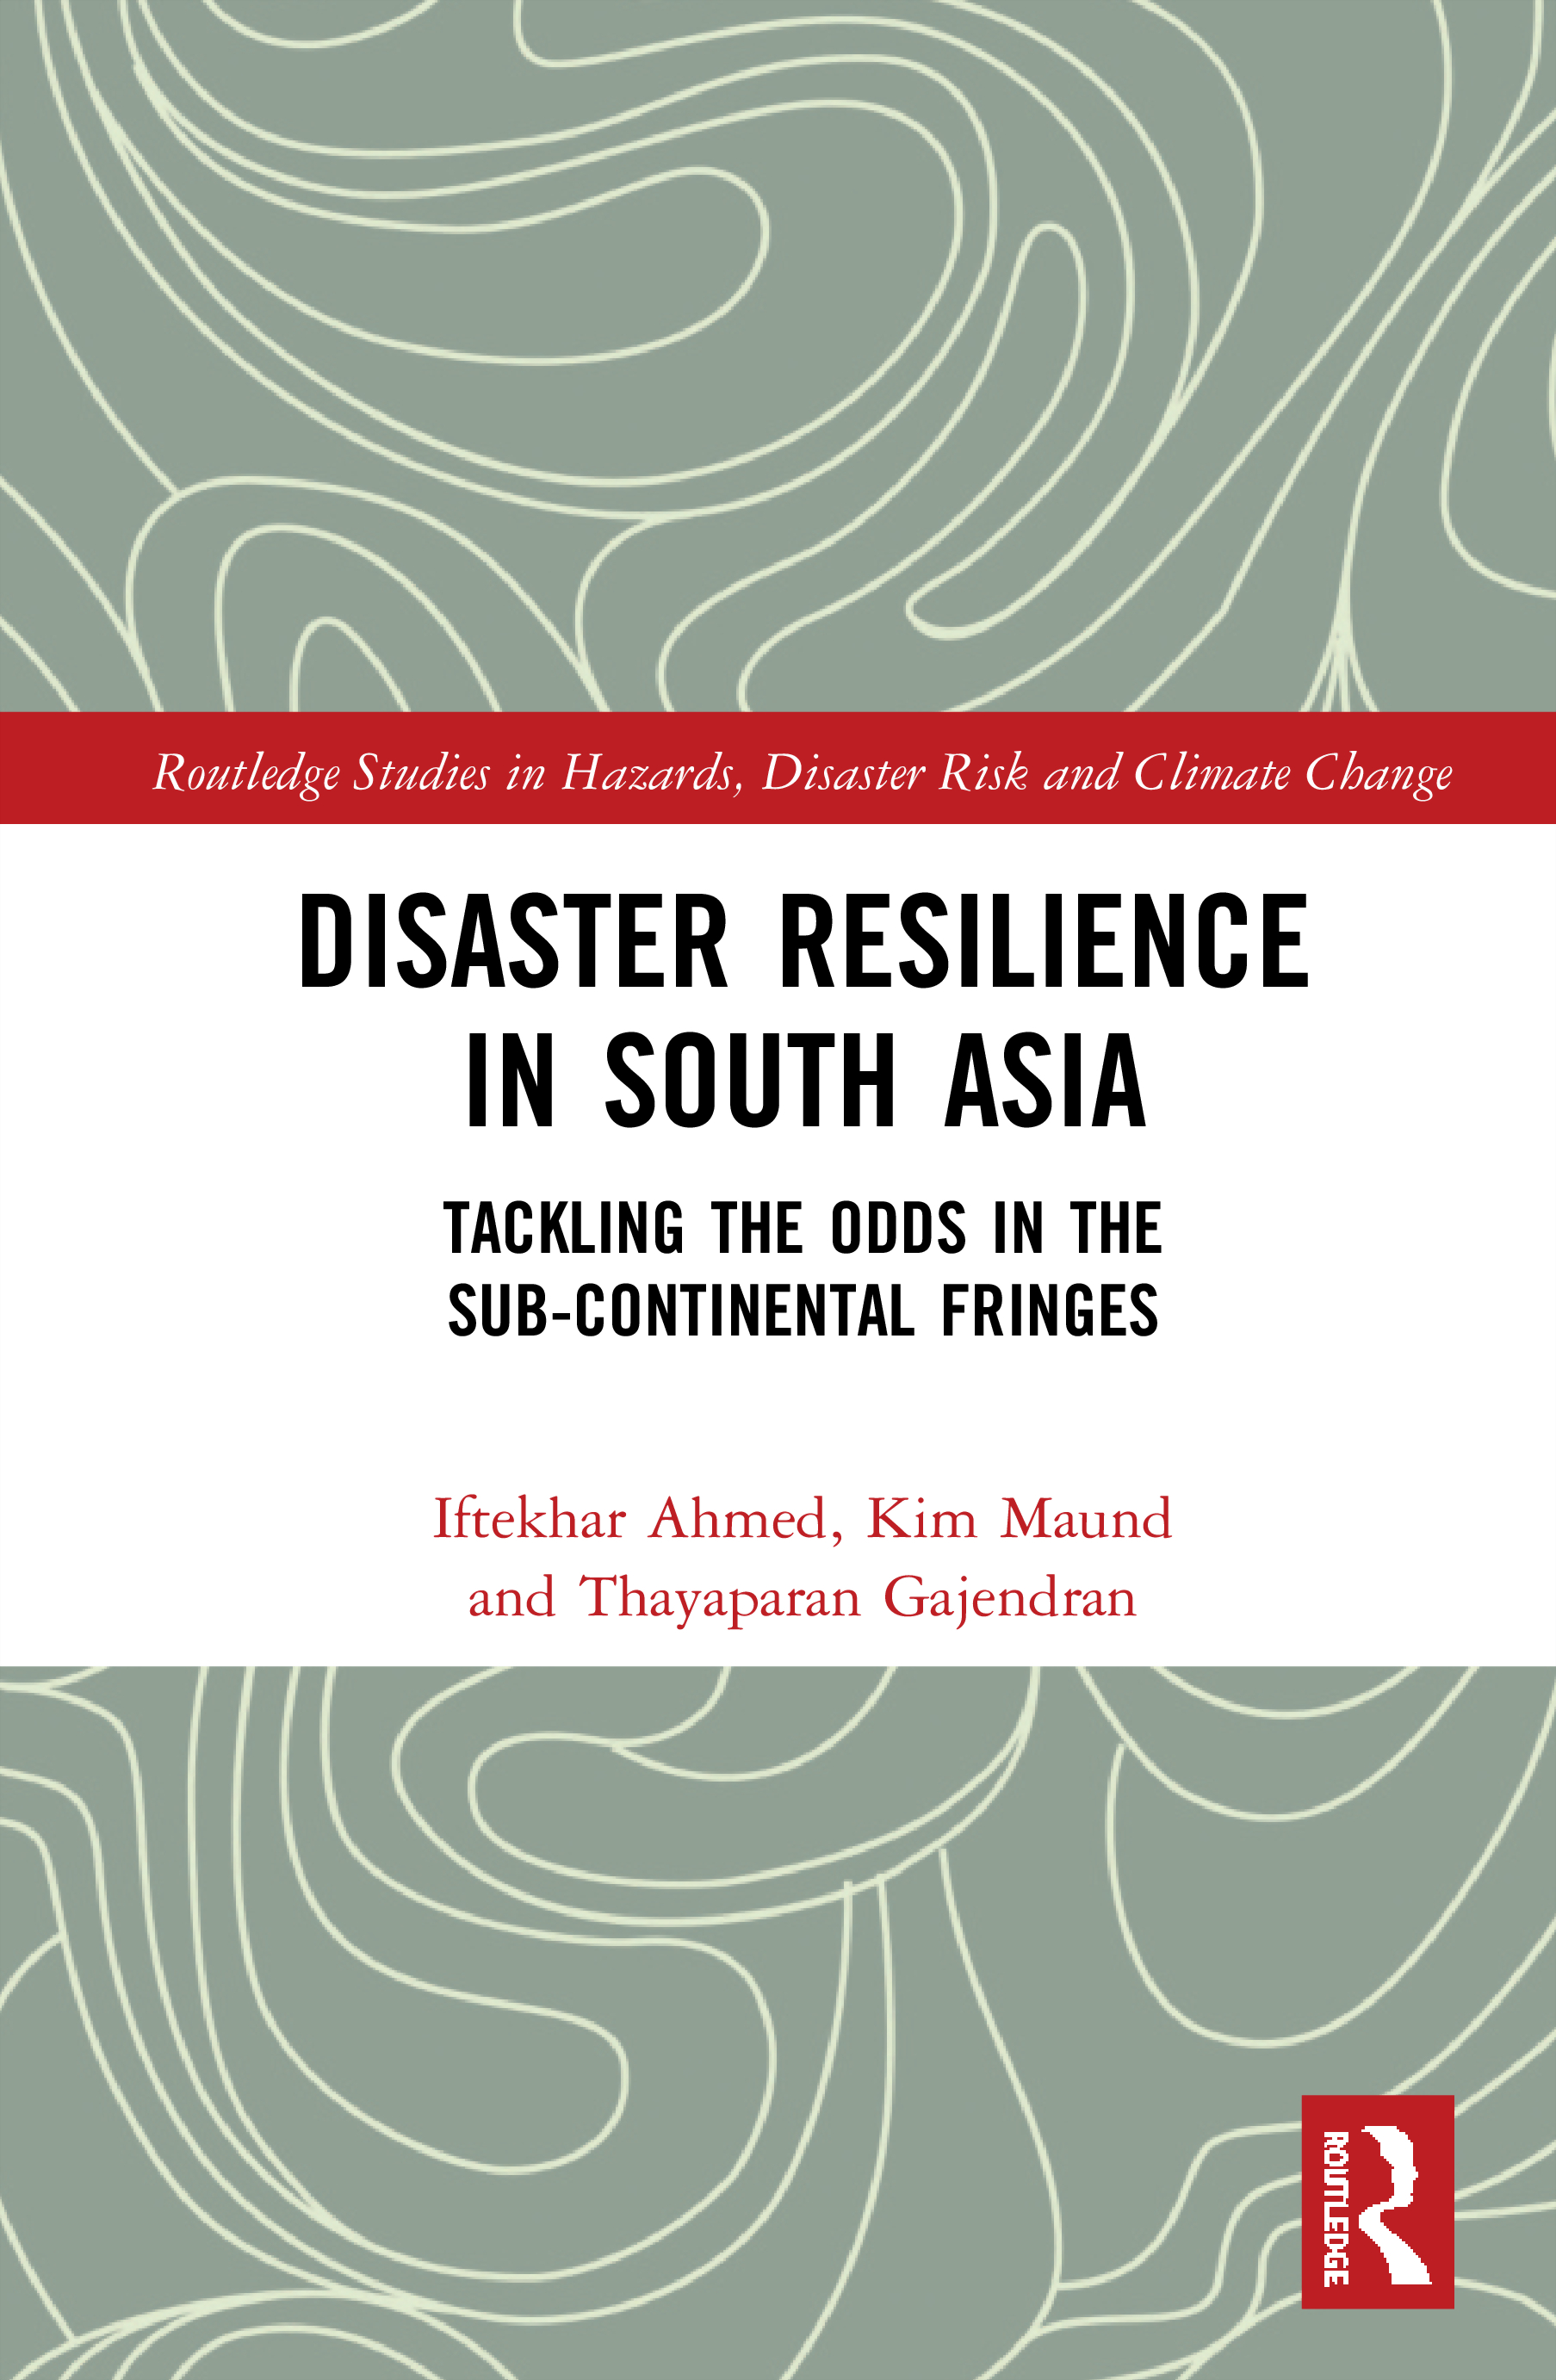 Disaster Resilience in South Asia: Tackling the Odds in the Sub-Continental Fringes book cover